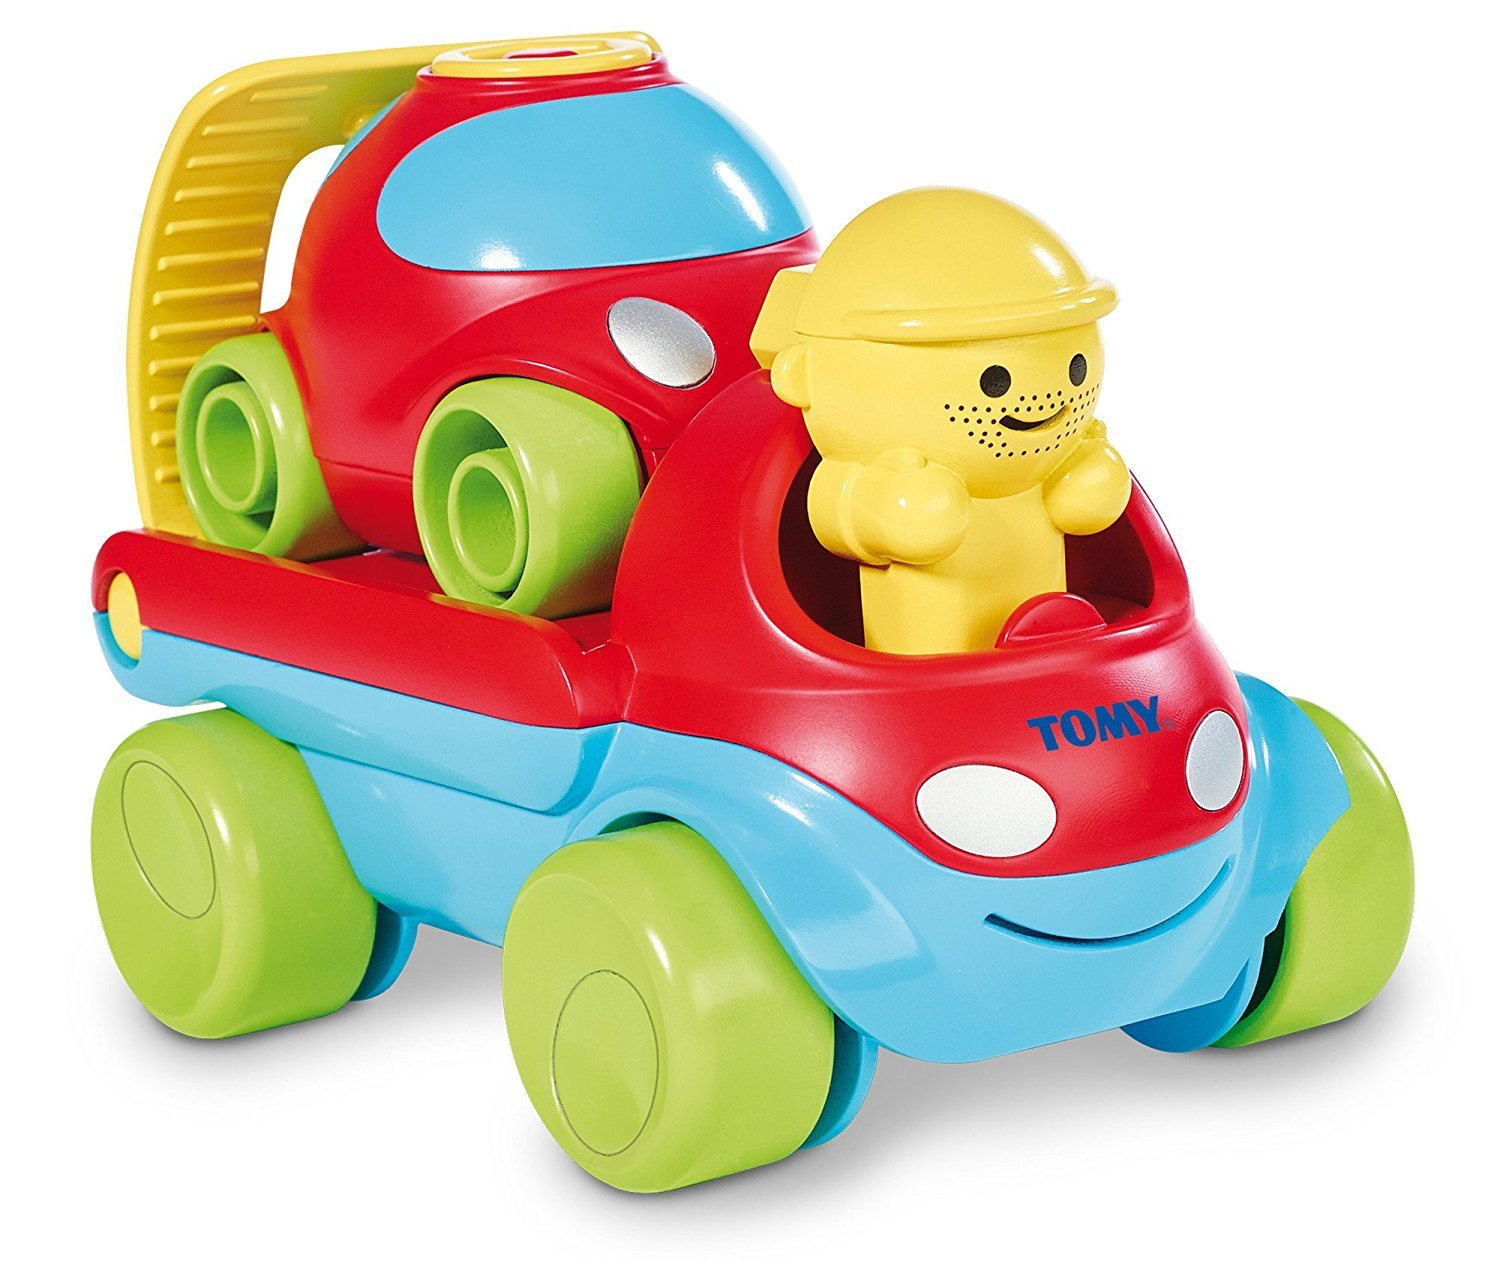 Tomy Toomies: Fix & Load - Tow Truck image